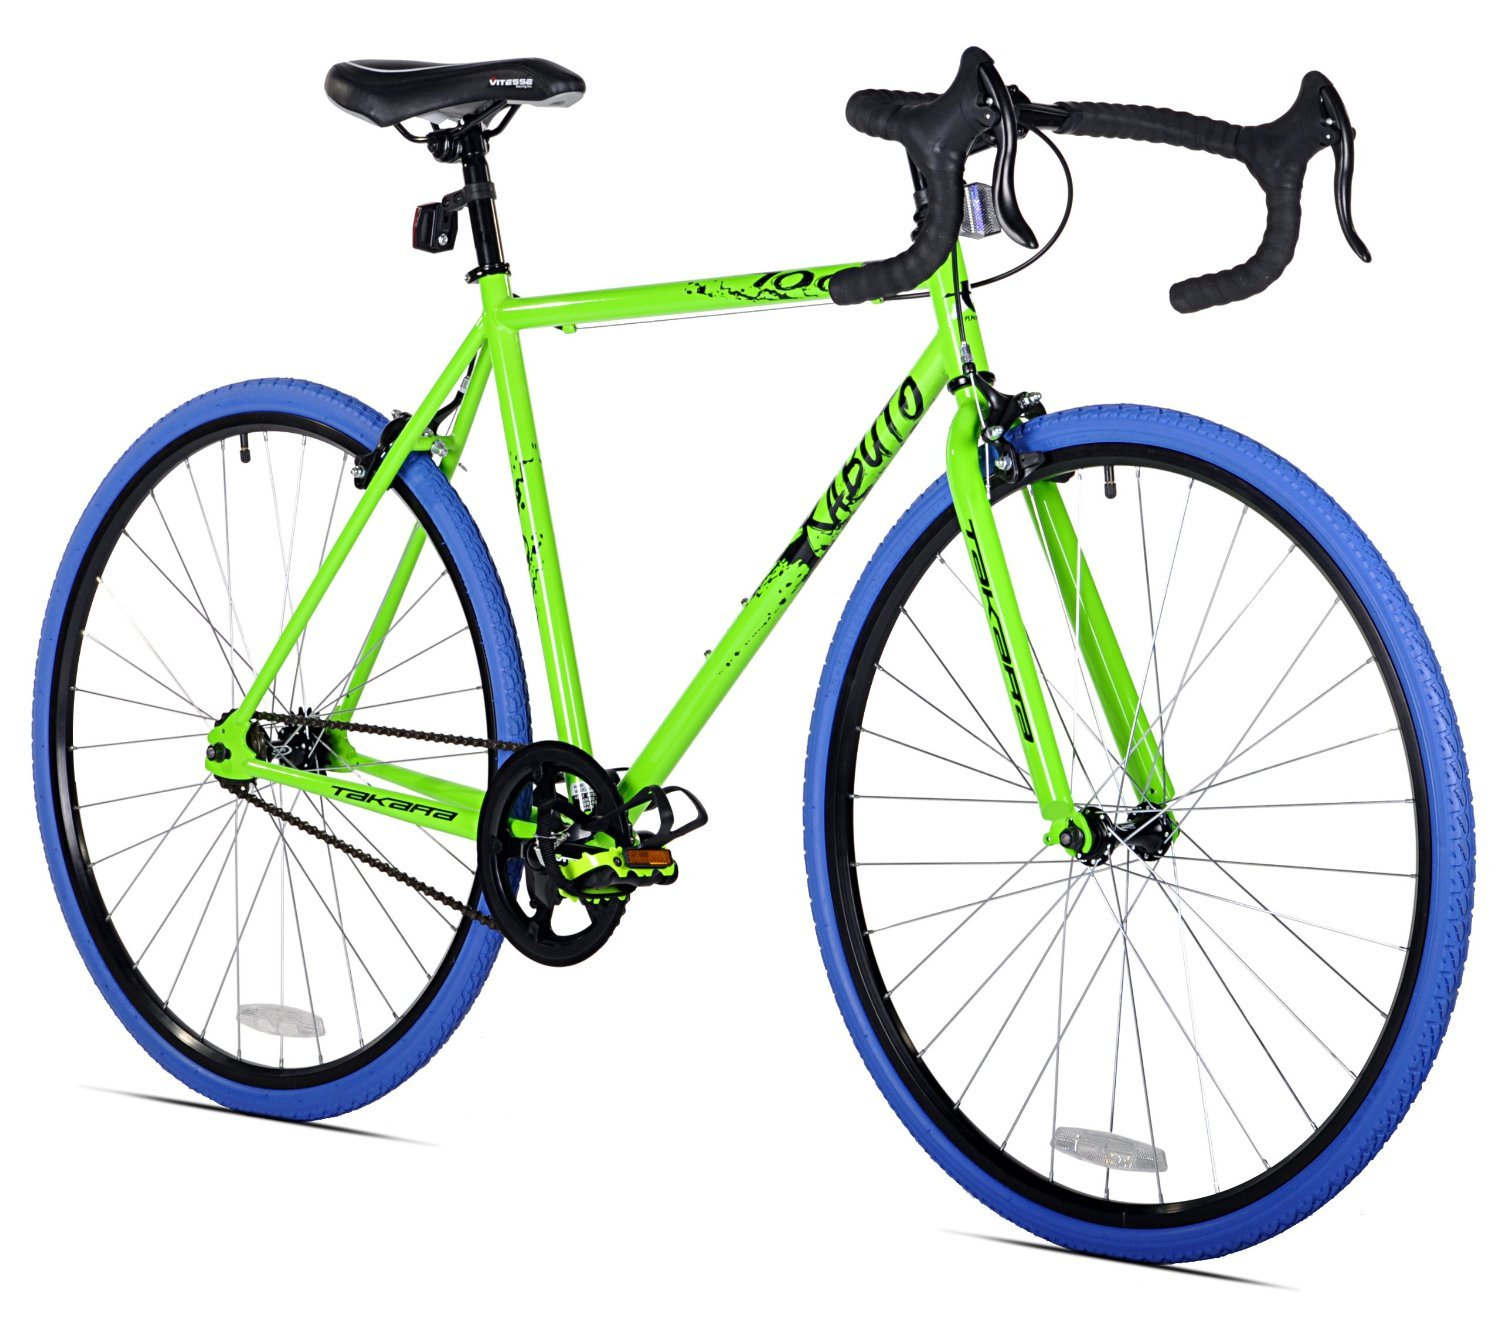 this bike is only making the list because i was forced to include it you see it is frequently the number 1 best selling single speed on amazon